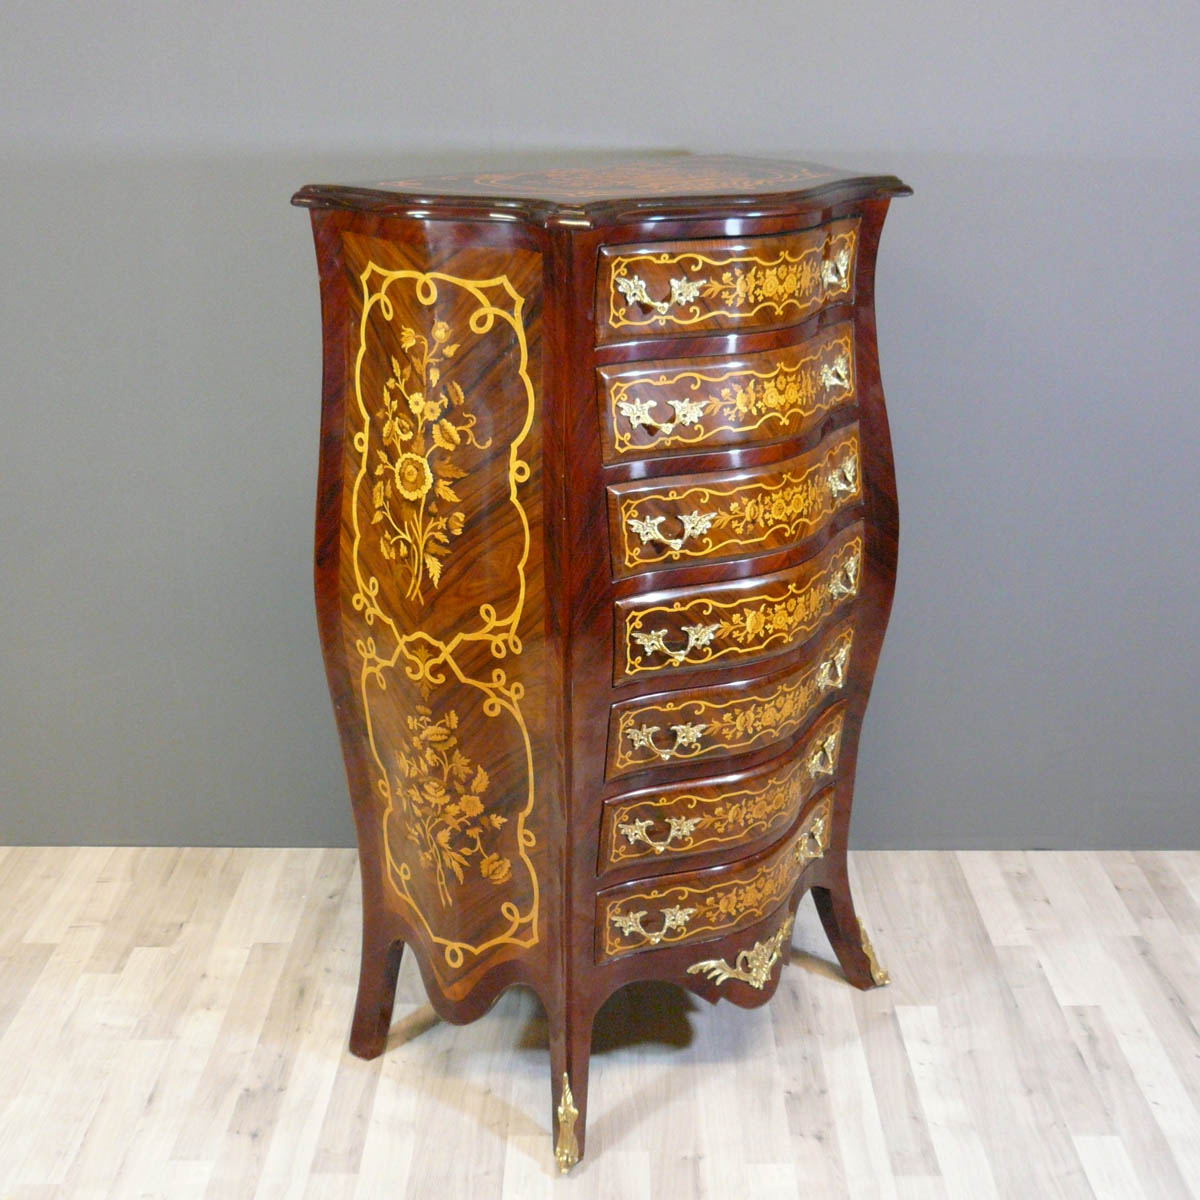 Semainier louis xv commode louis xv bureau louis xv - Meuble style louis 15 ...